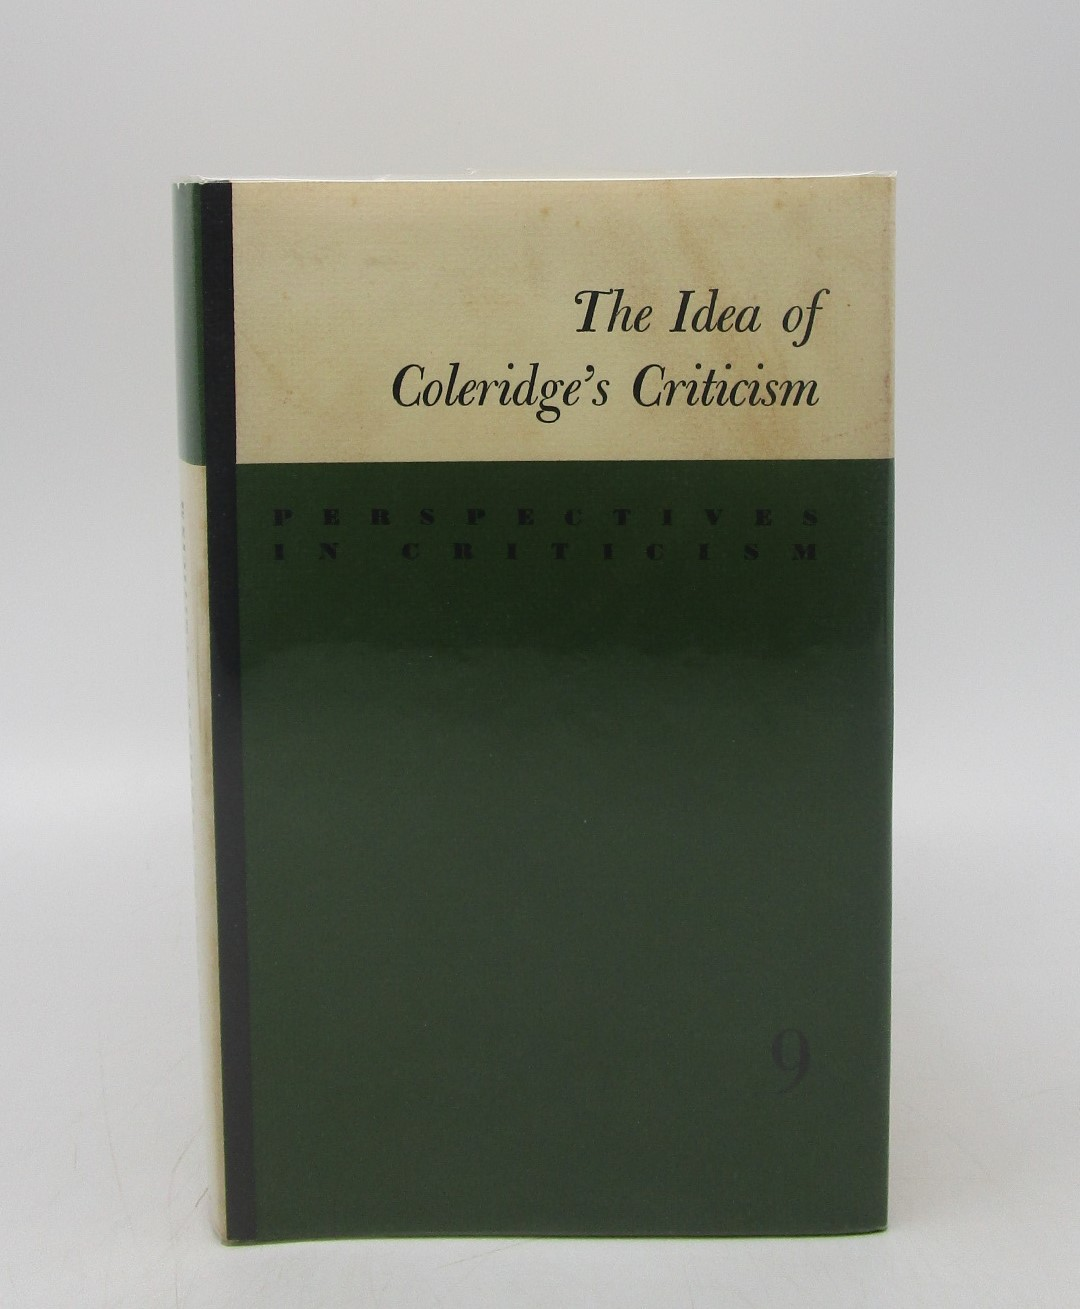 Image for The Idea of Coleridge's Criticism (vol 9 of Perspectives in Criticism ceries)